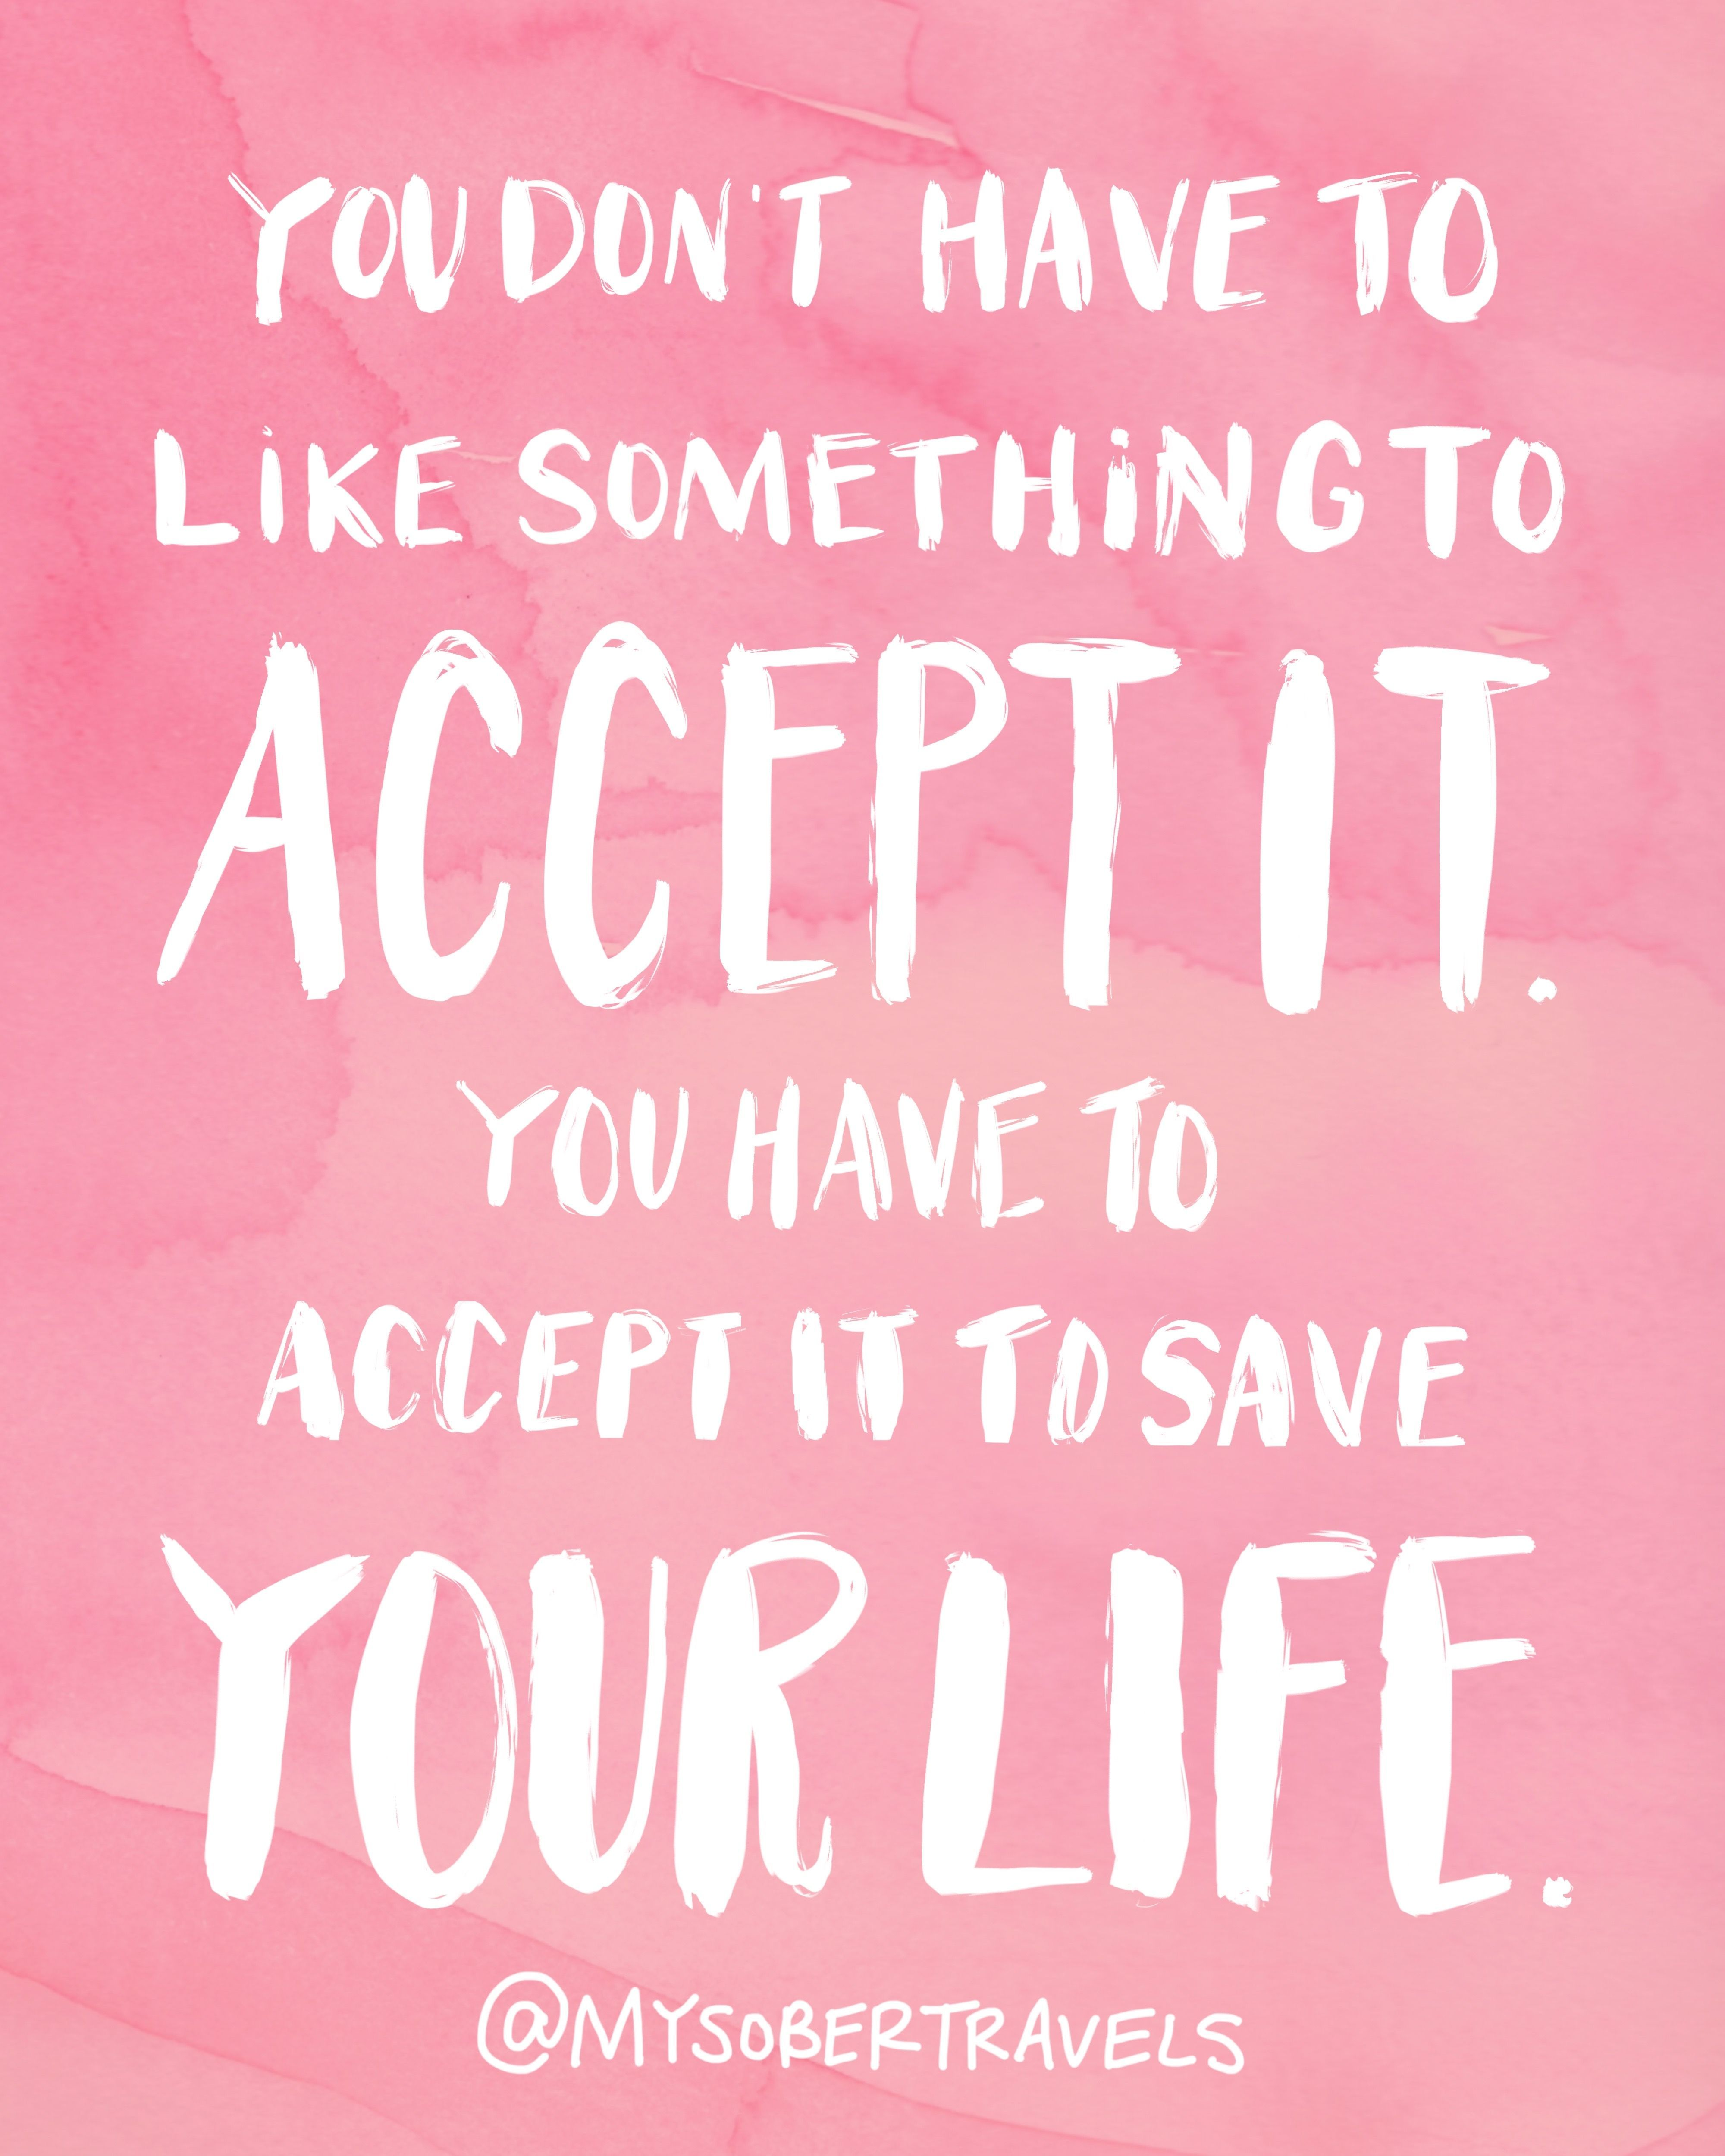 12 Recovery Quotes To Inspire You My Sober Travels Recovery Quotes Strength Recovery Quotes Inspirational Recovery Quotes